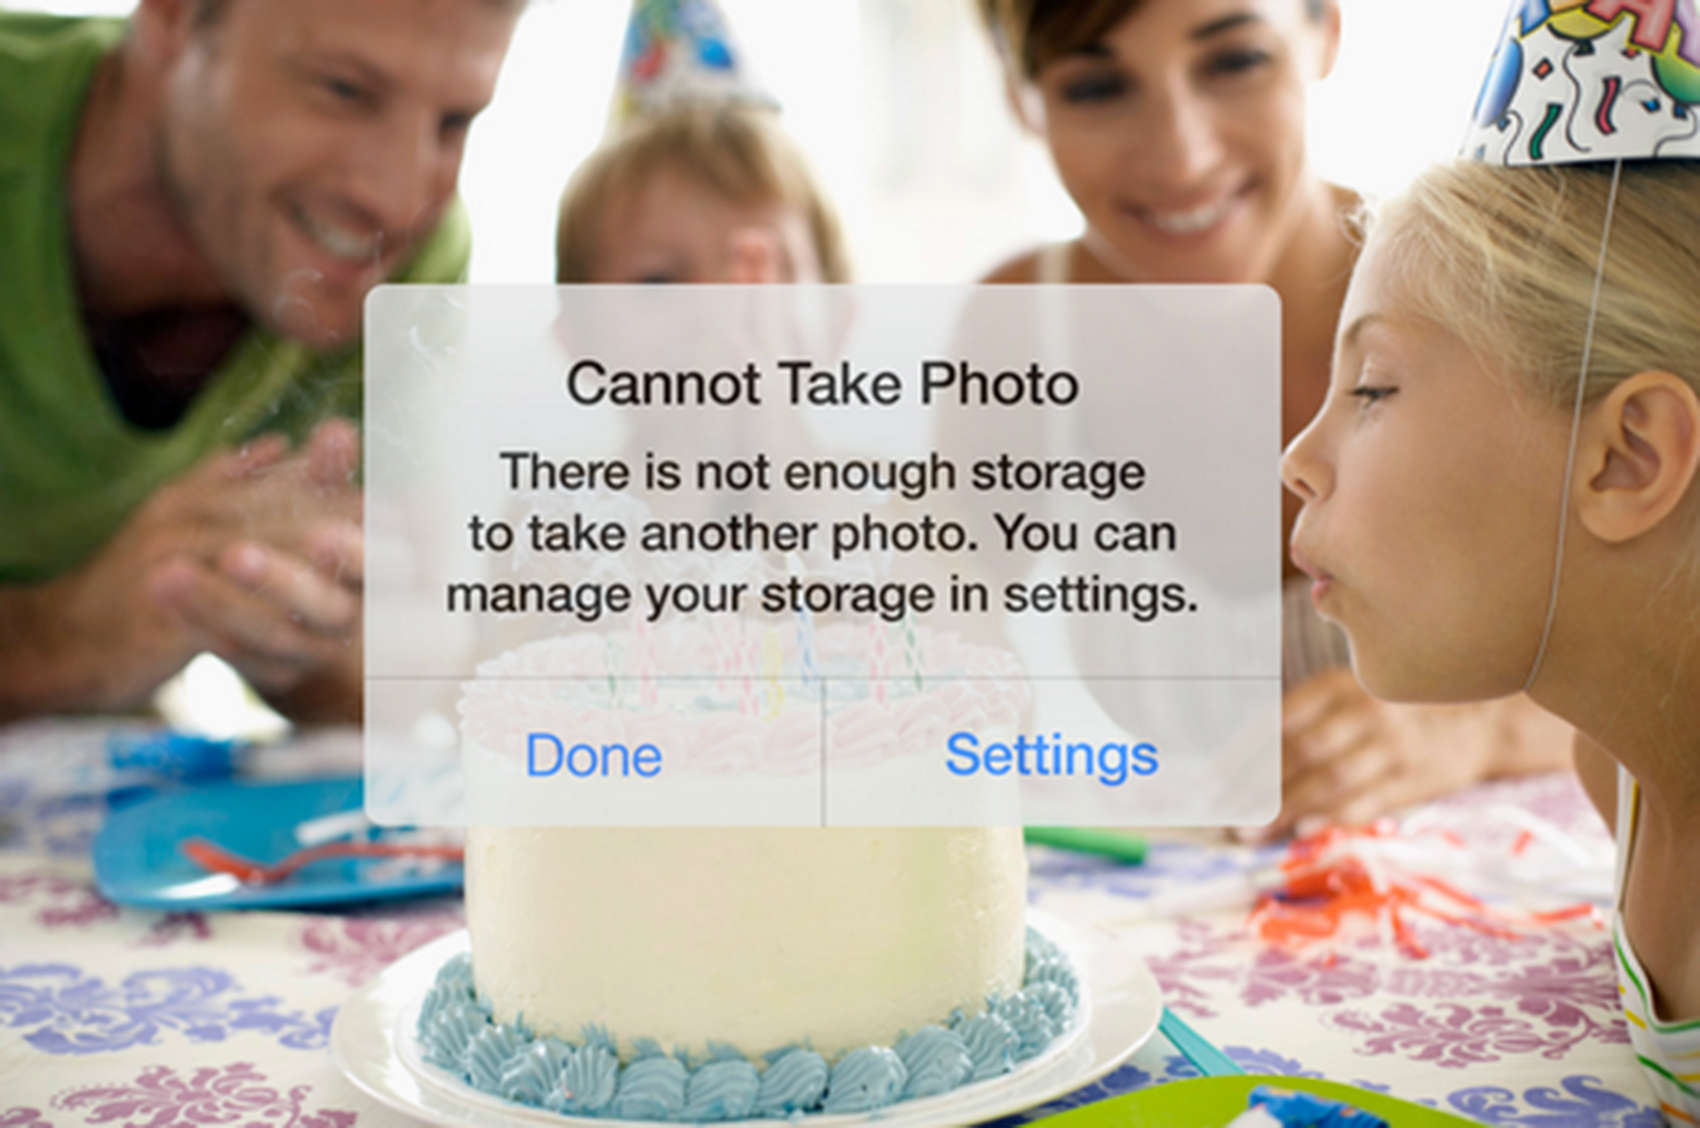 Avoid this message with the IceCream app, which quickly helps free your storage to continue shooting photos.